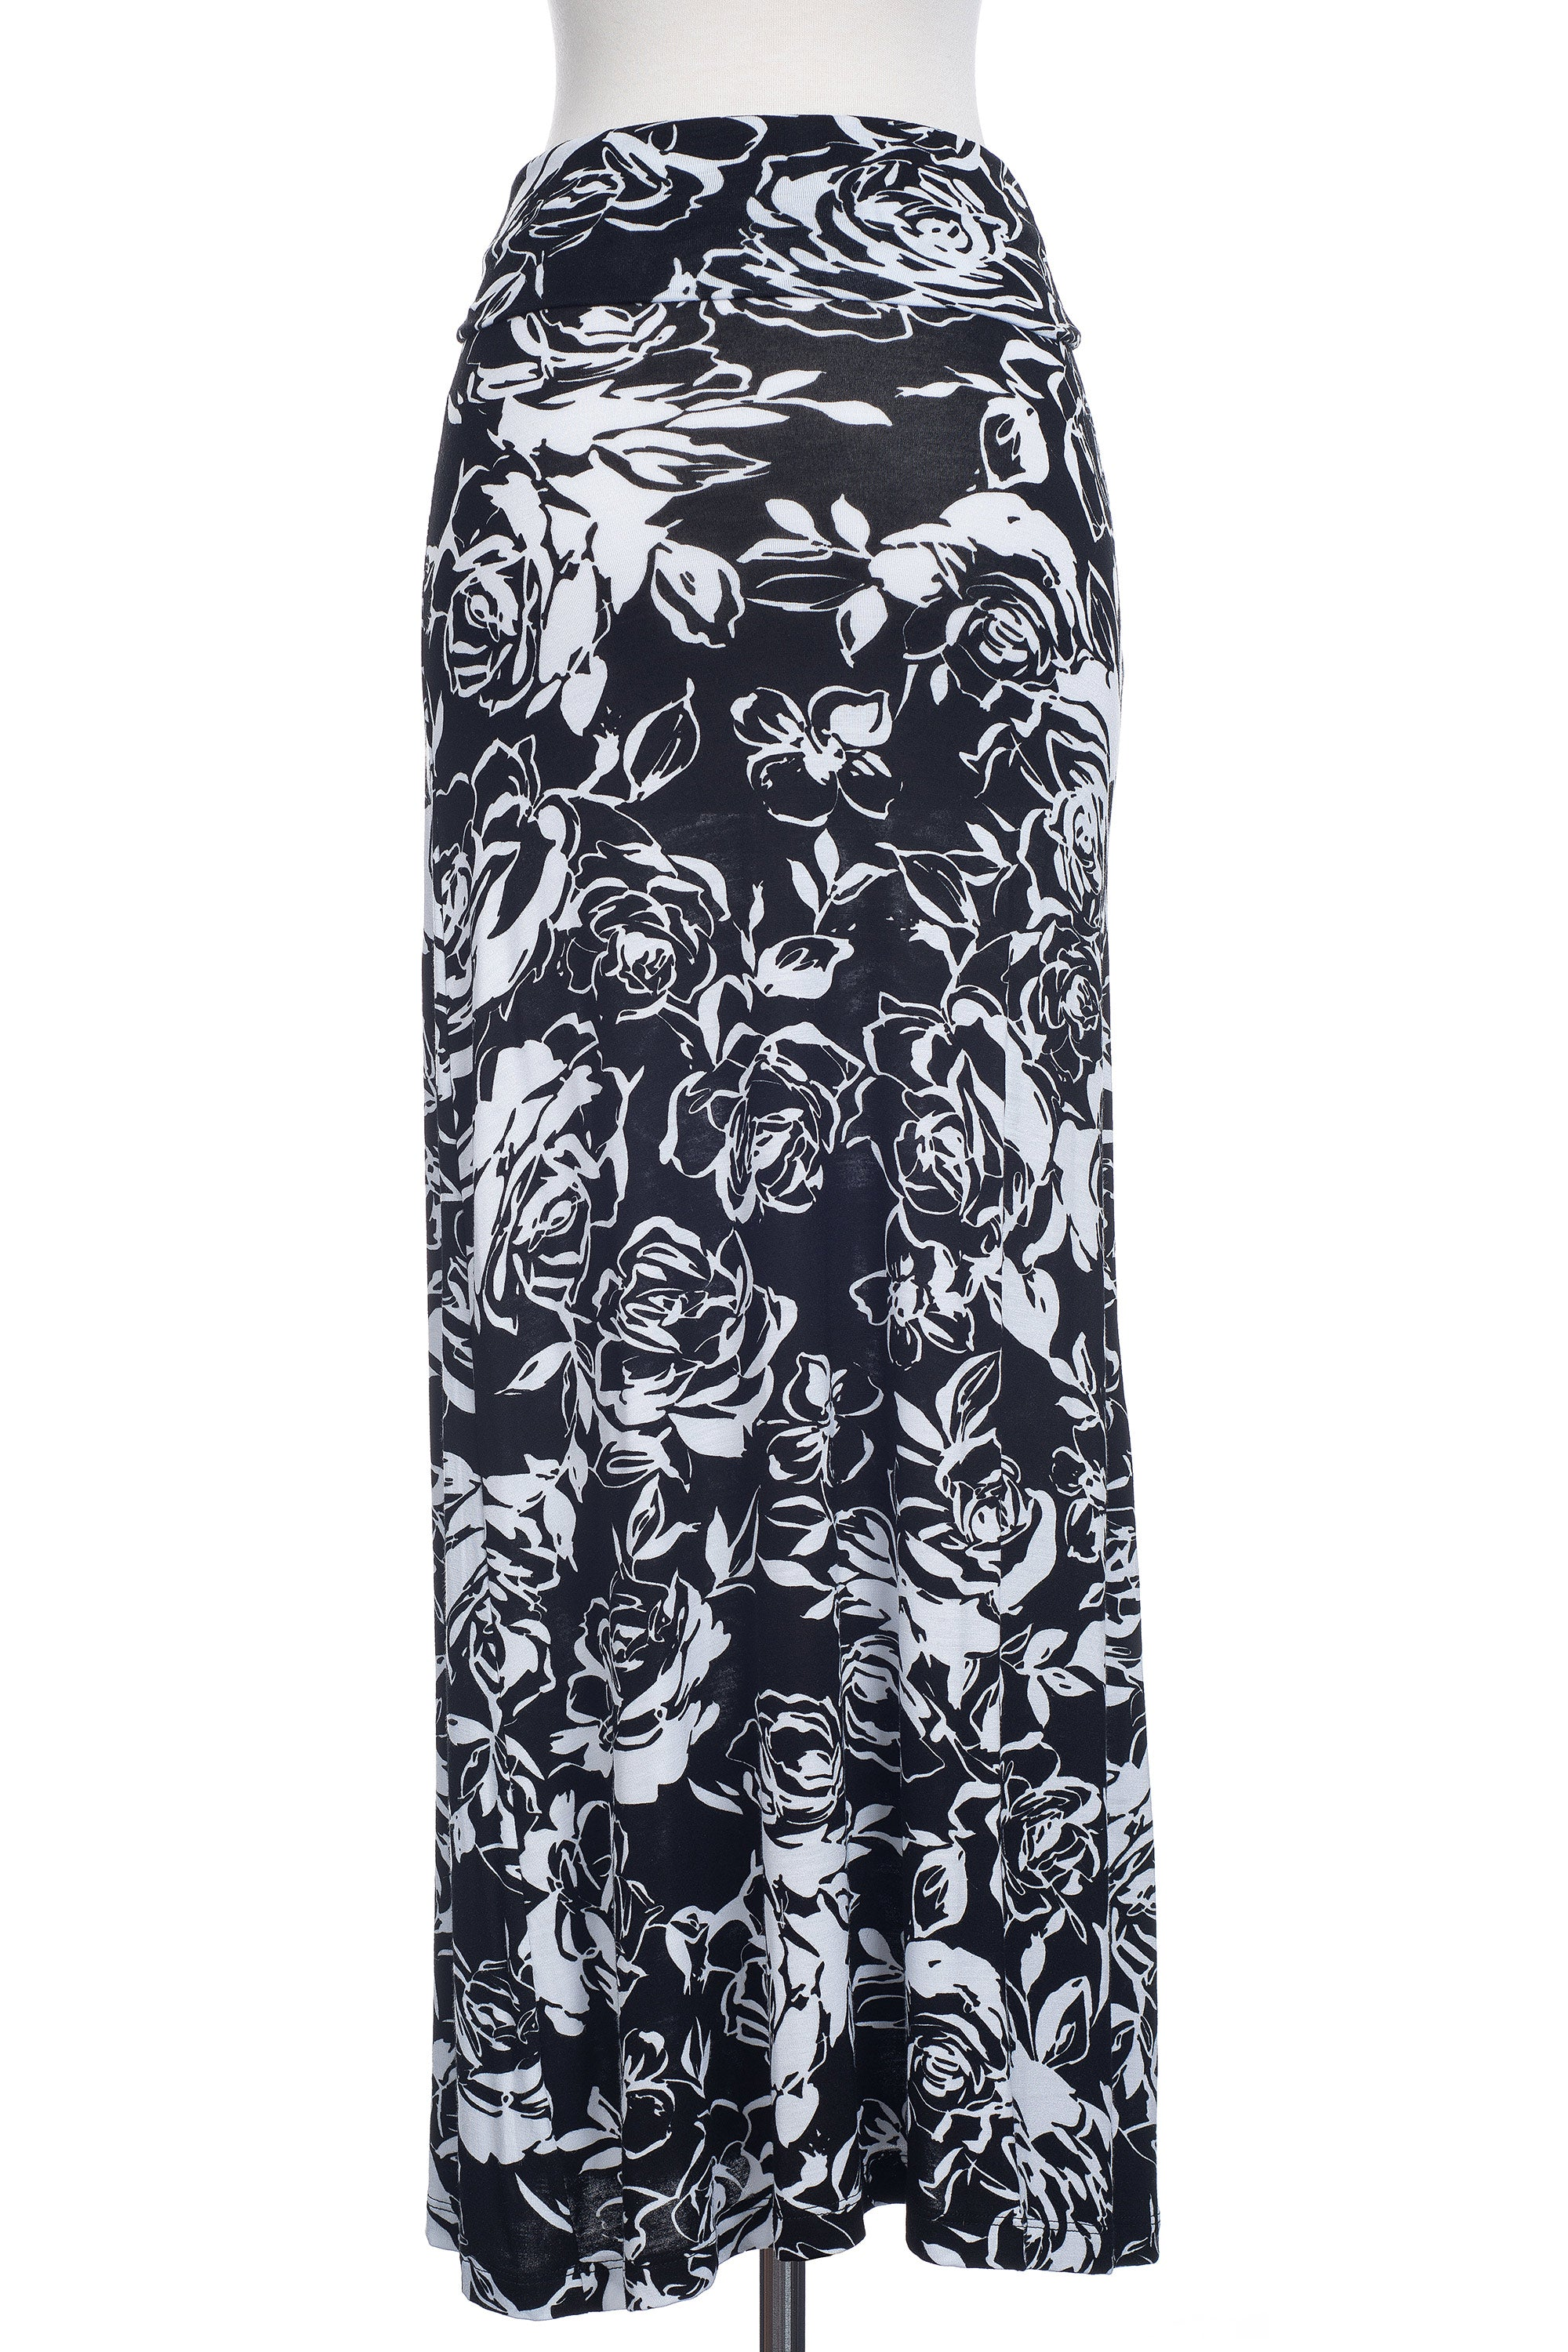 Type 4 Refined Roses Maxi Skirt